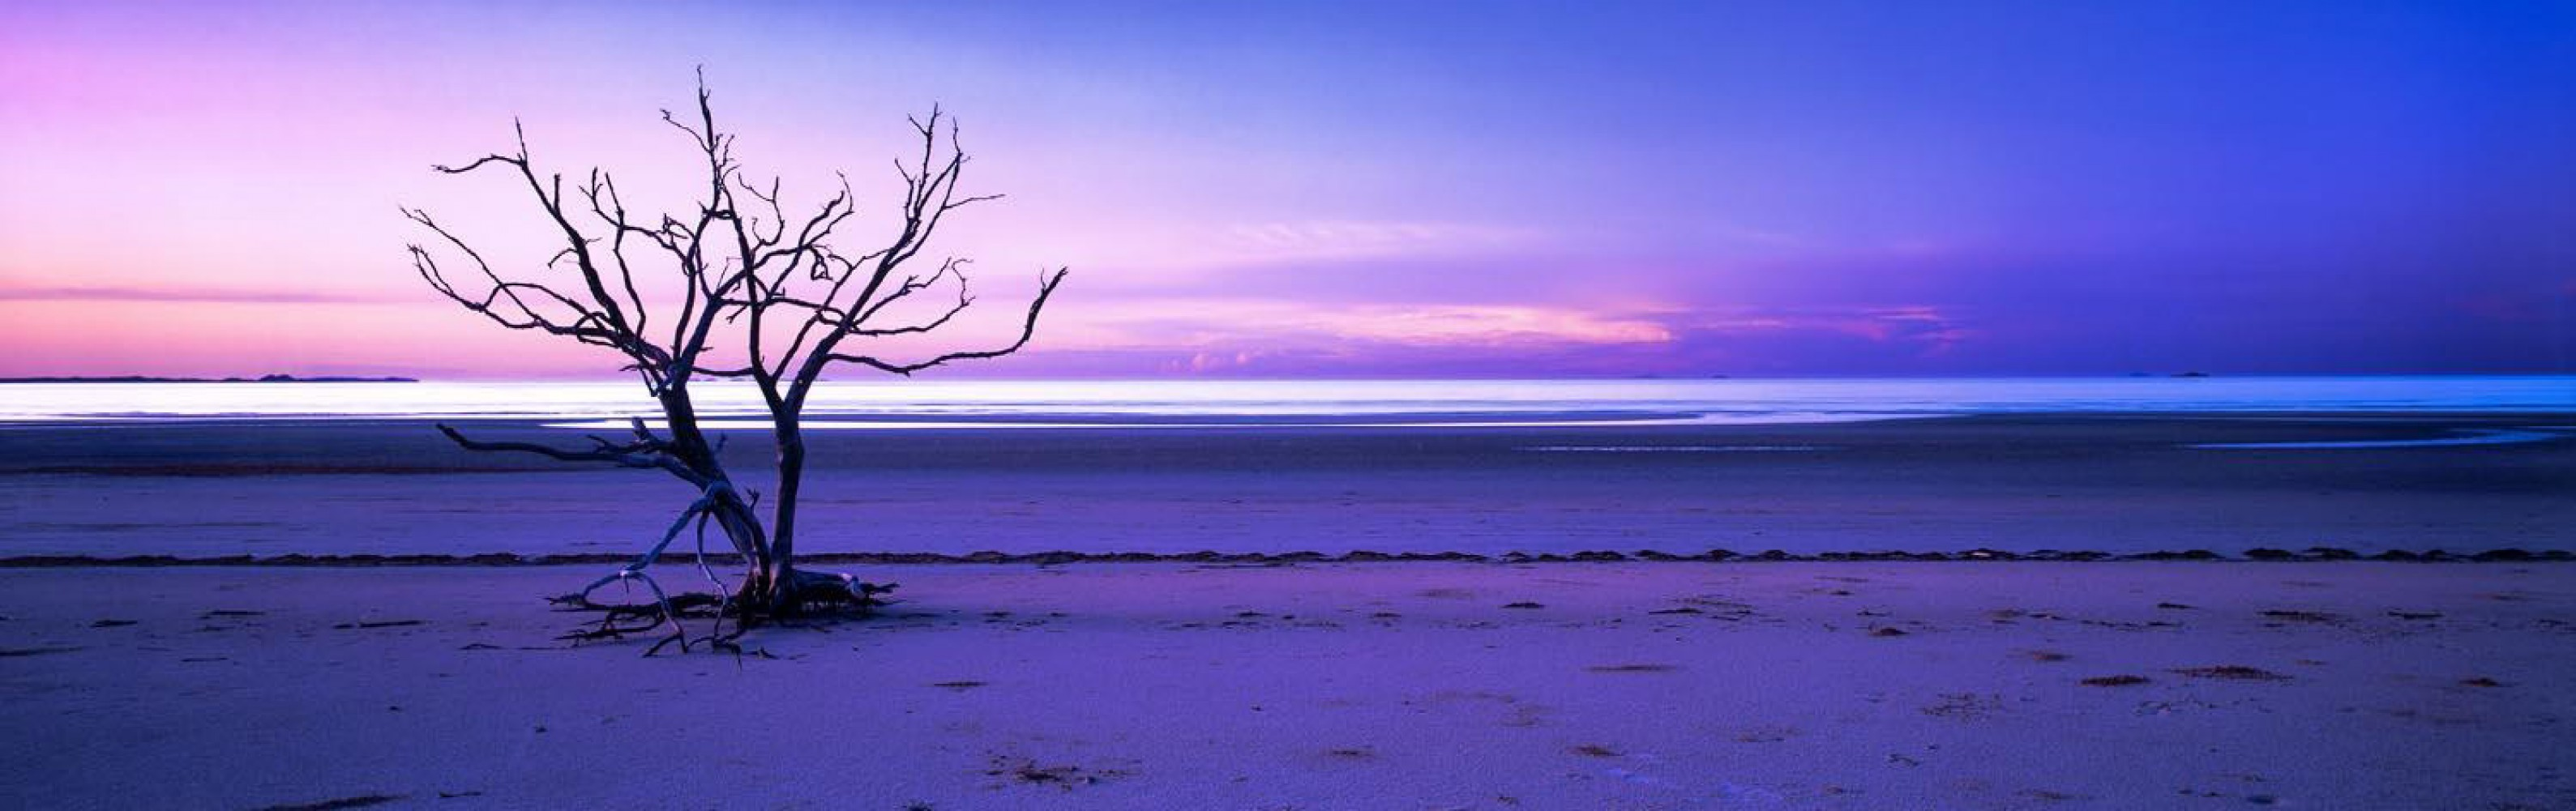 Solitude 2002 by Peter Lik